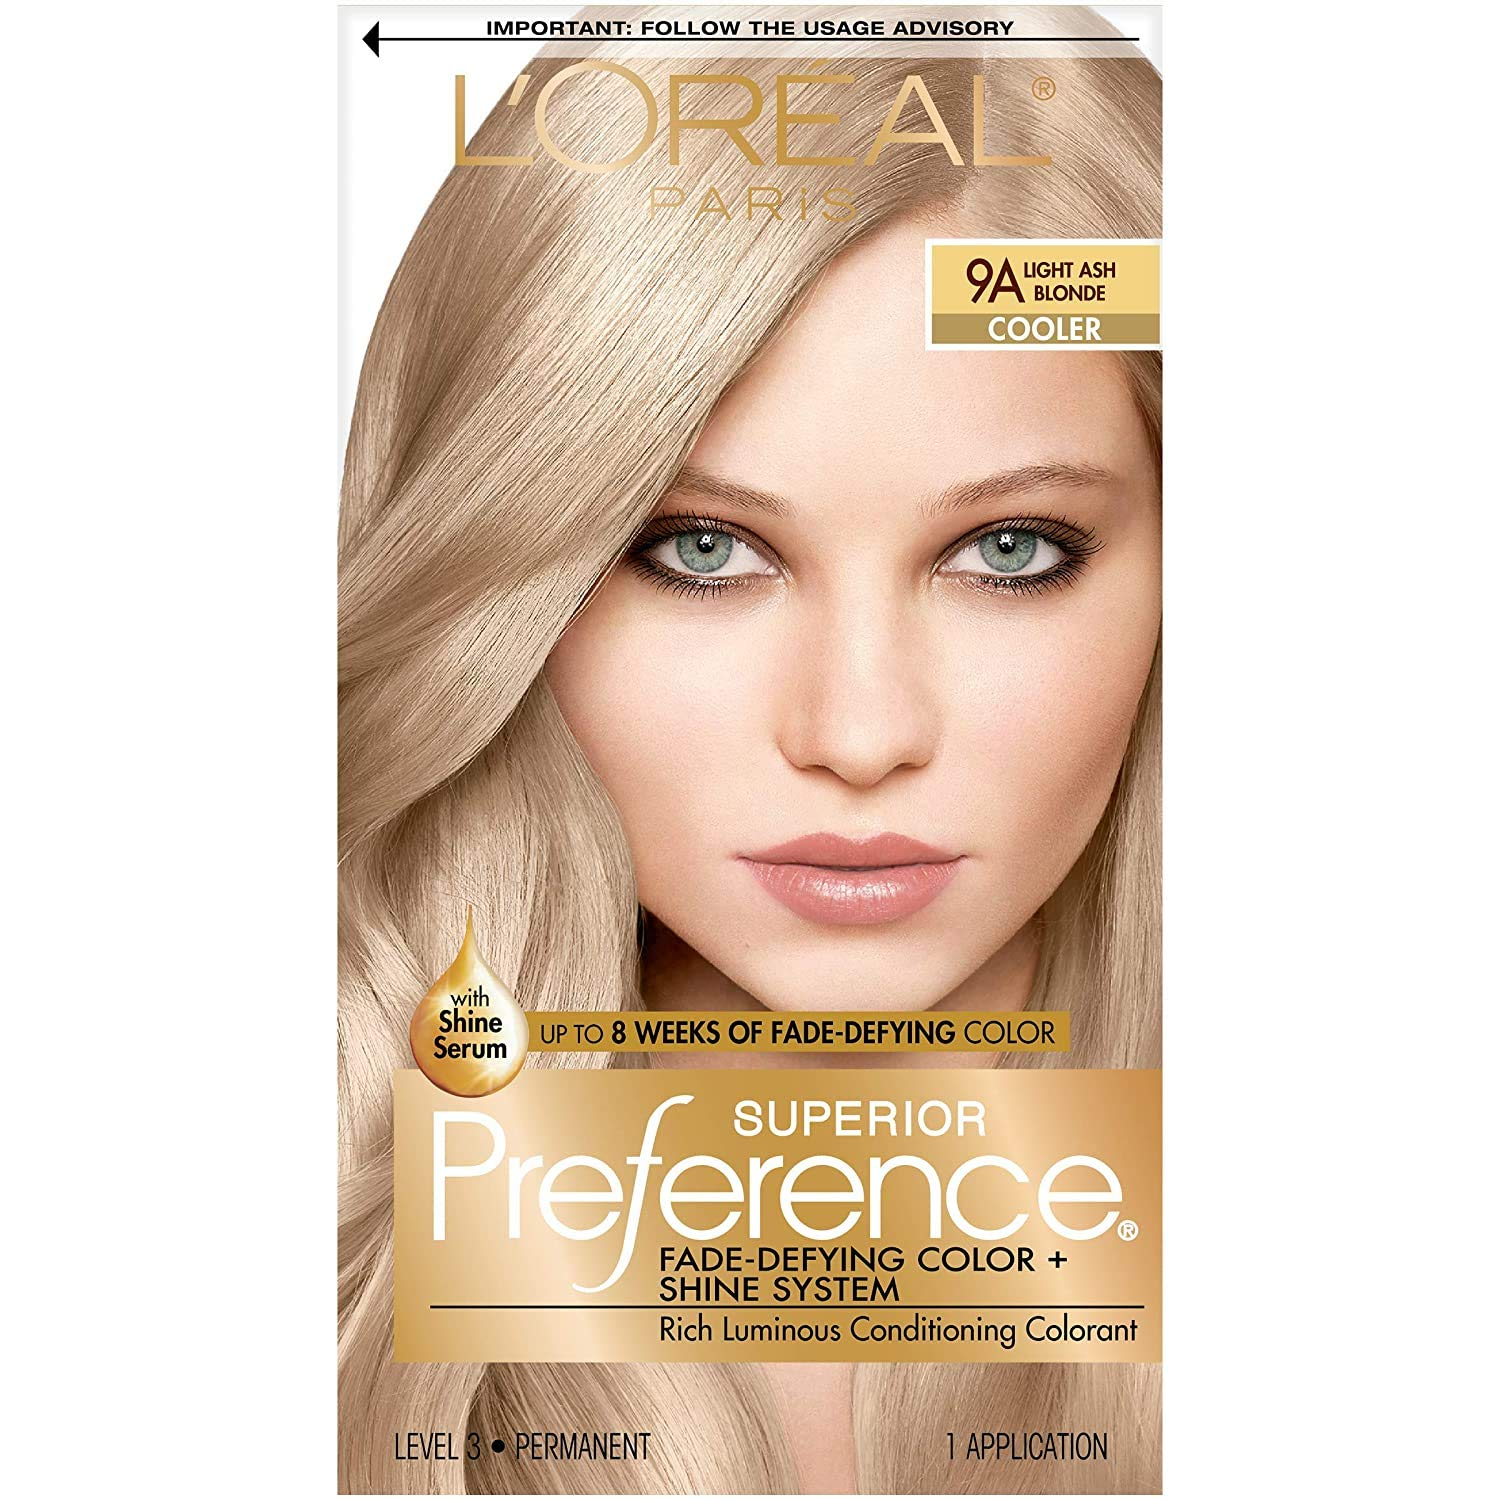 L'Oréal Paris Superior Preference Fade-Defying + Shine Permanent Hair Color, 9A Light Ash Blonde, 1 kit Hair Dye